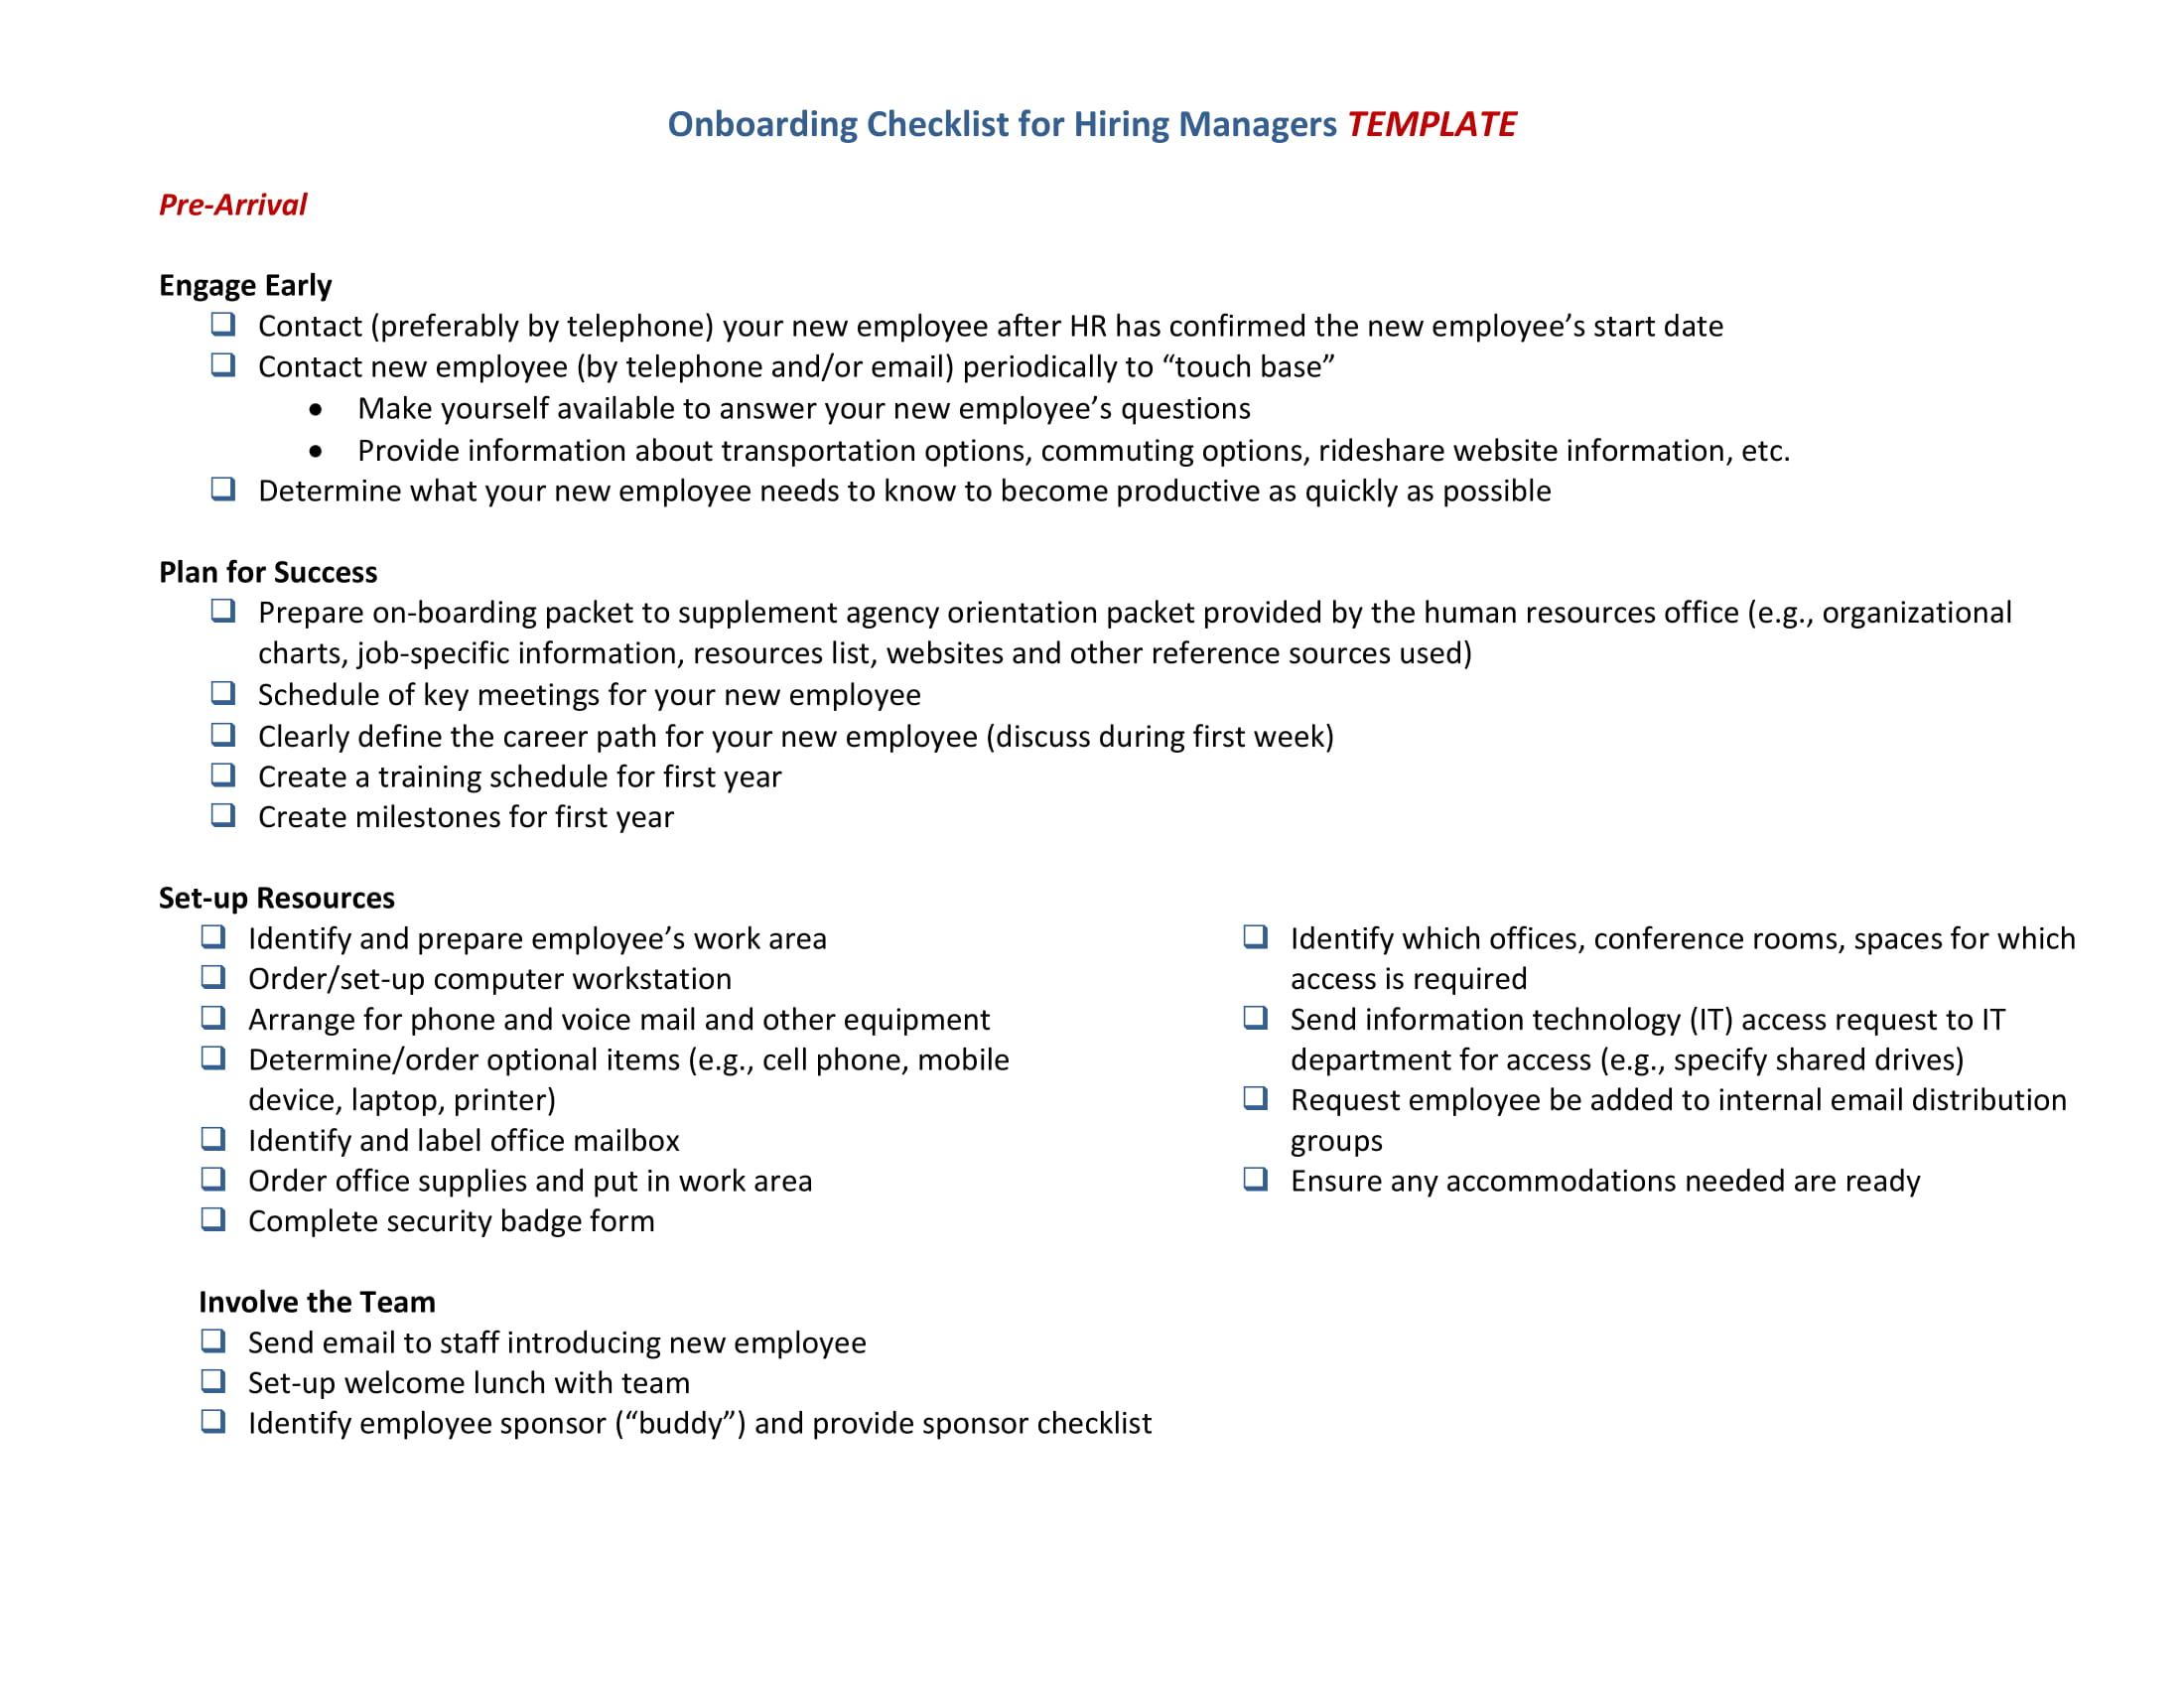 19 HR Checklist Examples PDF Examples